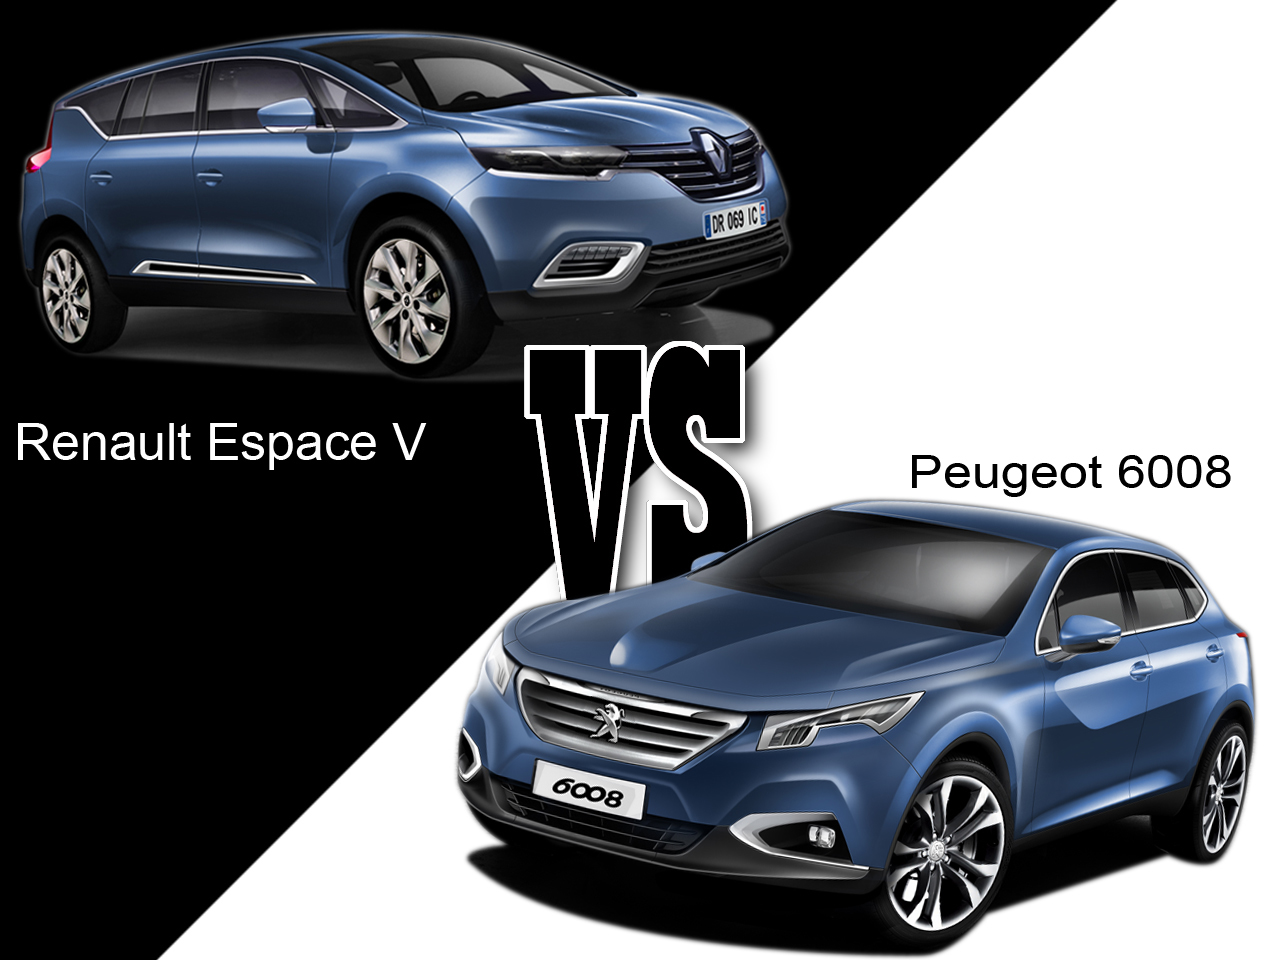 renault espace v vs peugeot 6008 le renouveau du haut de. Black Bedroom Furniture Sets. Home Design Ideas